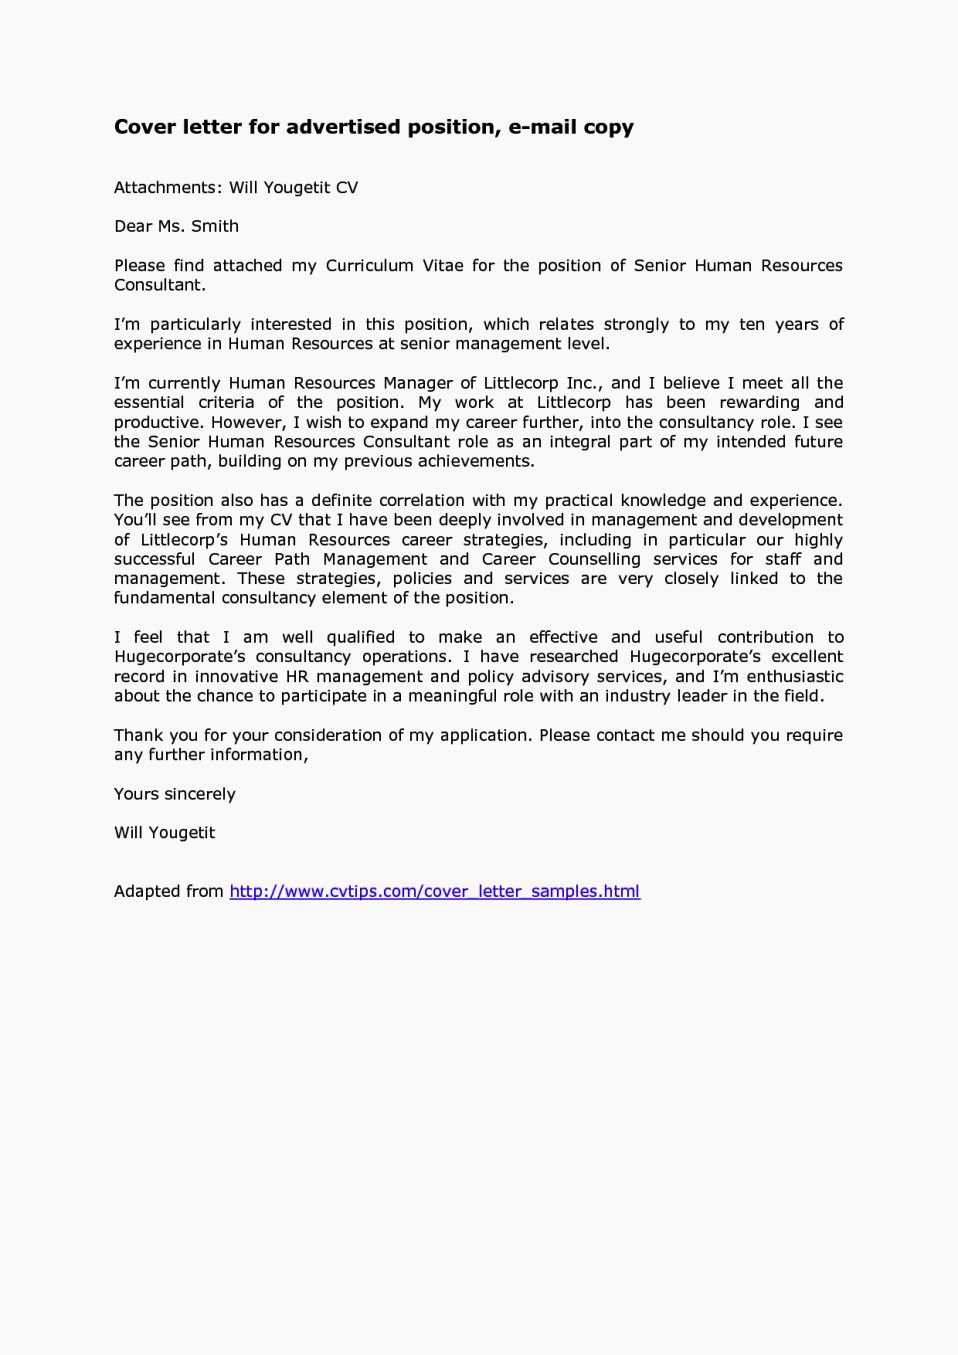 Email Cover Letter for Resume Inspirational Sample Cover Letters for Resumes for Email E Mail Take